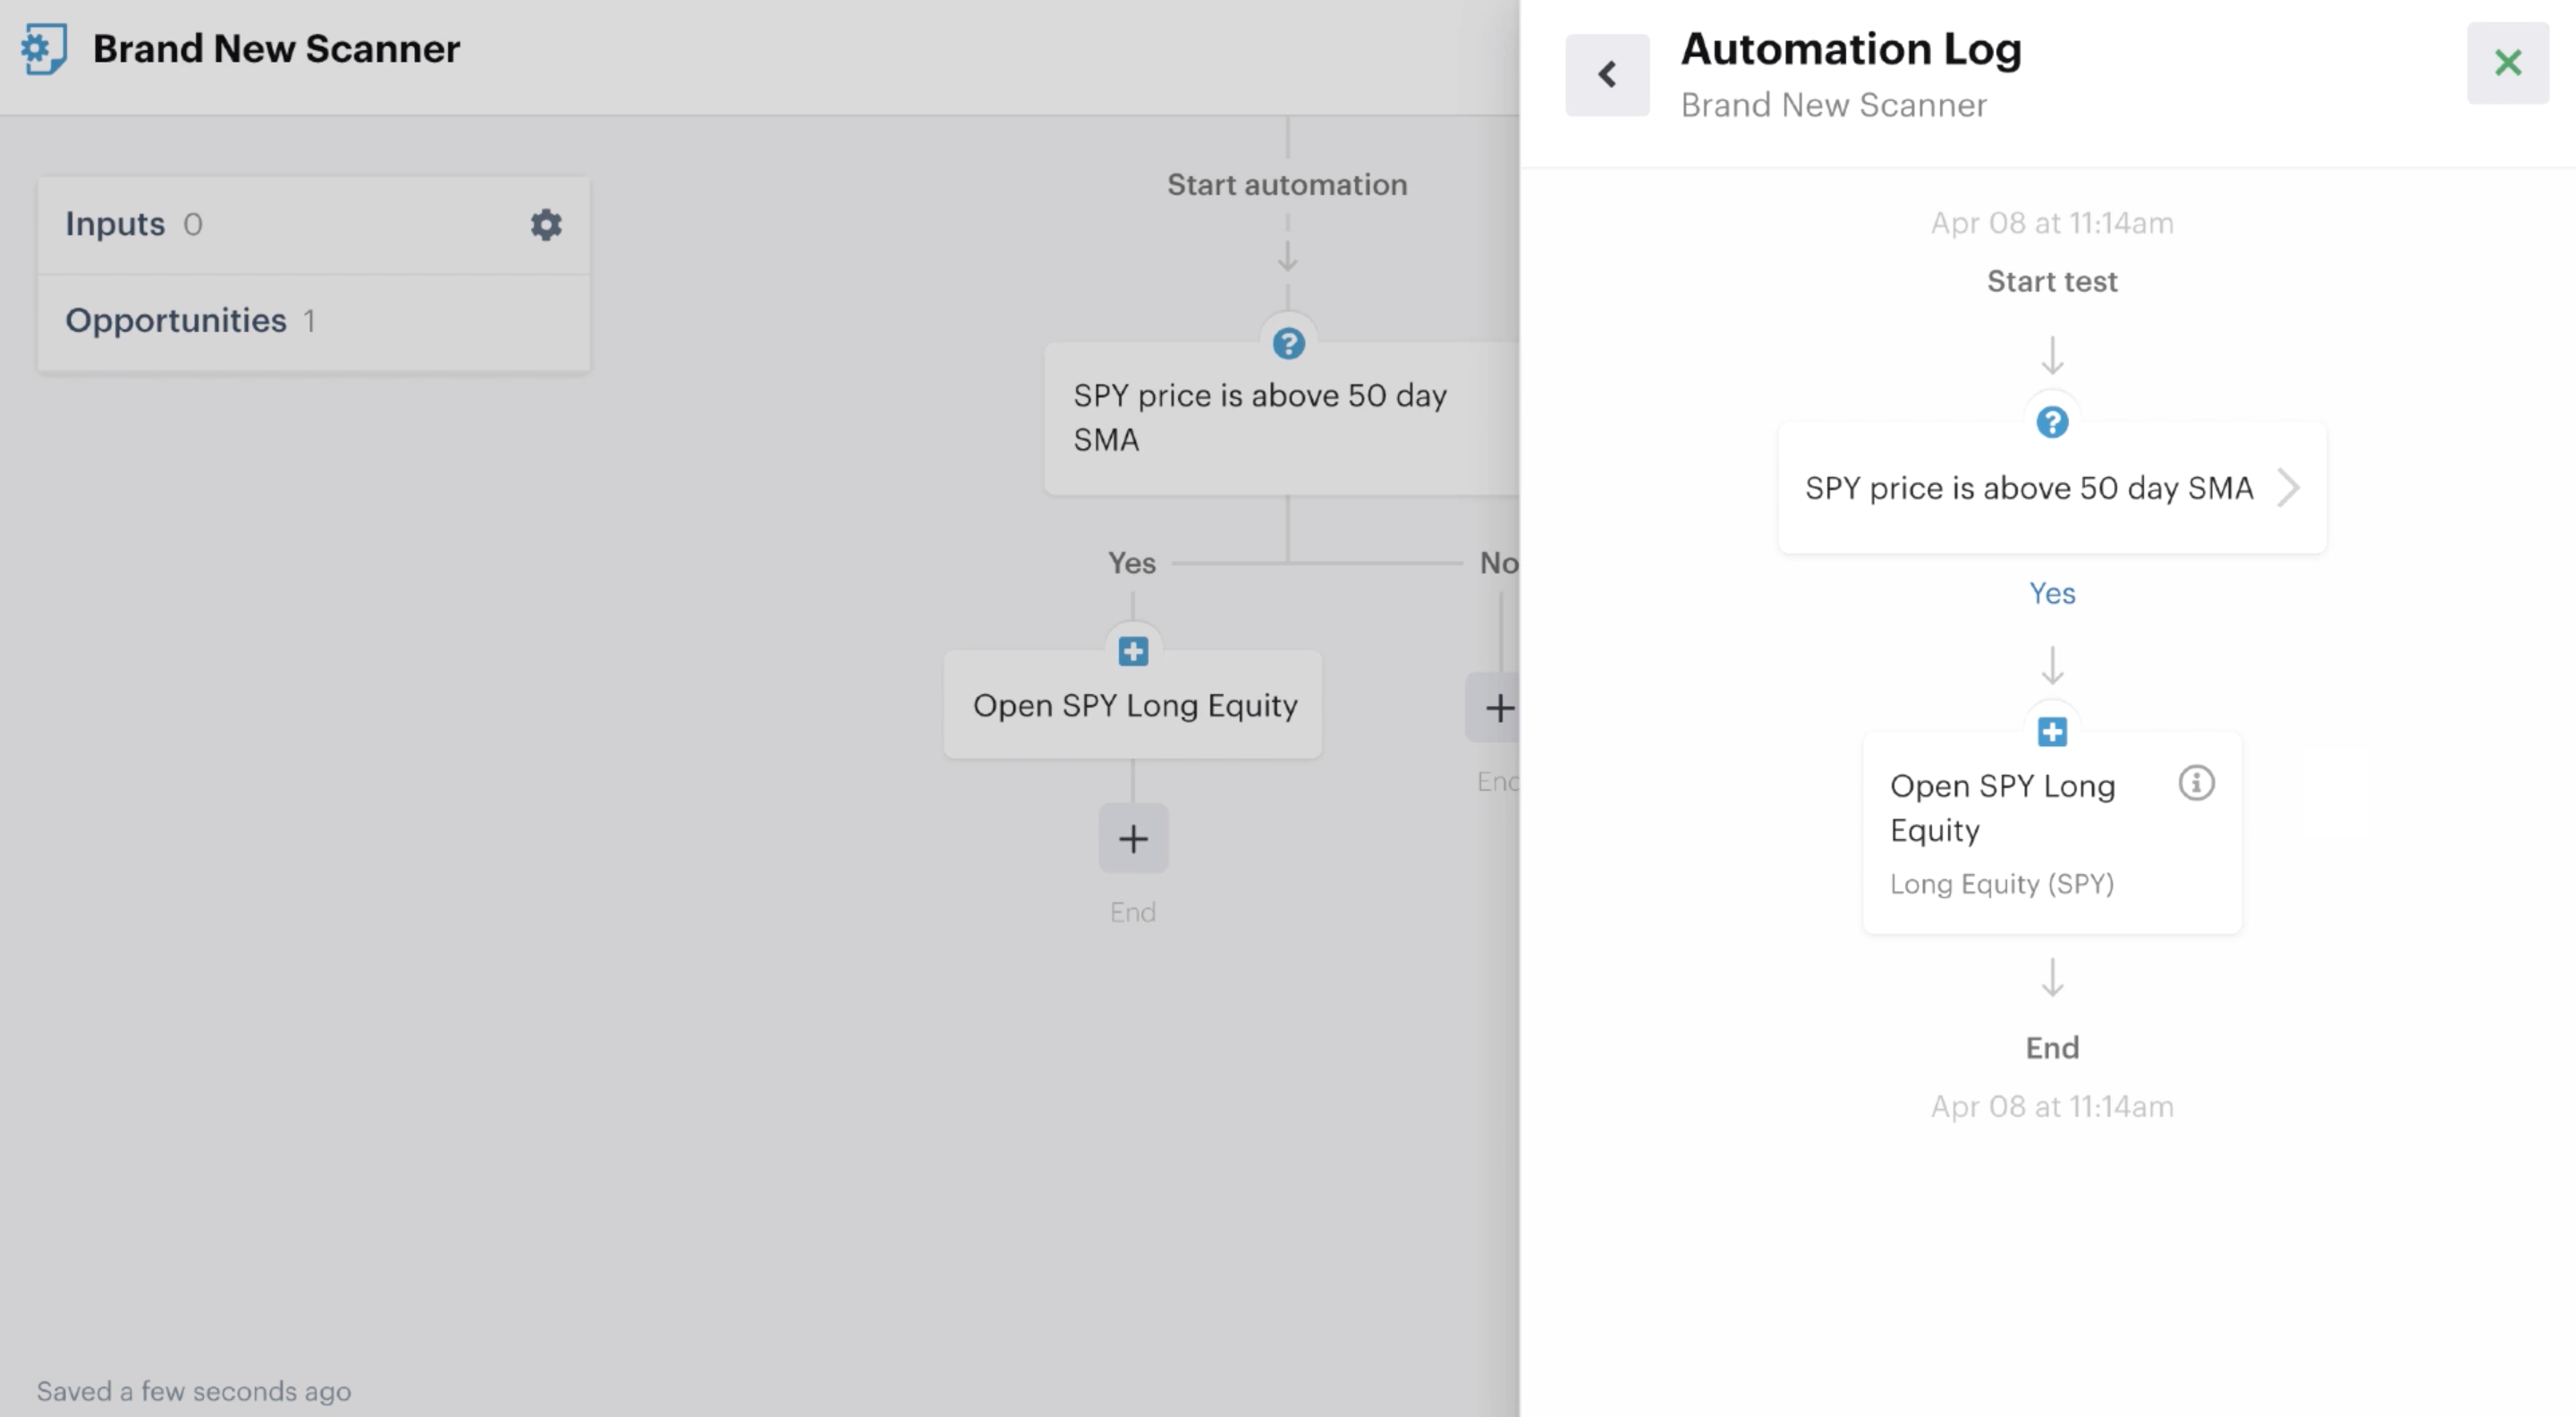 Test of an automation